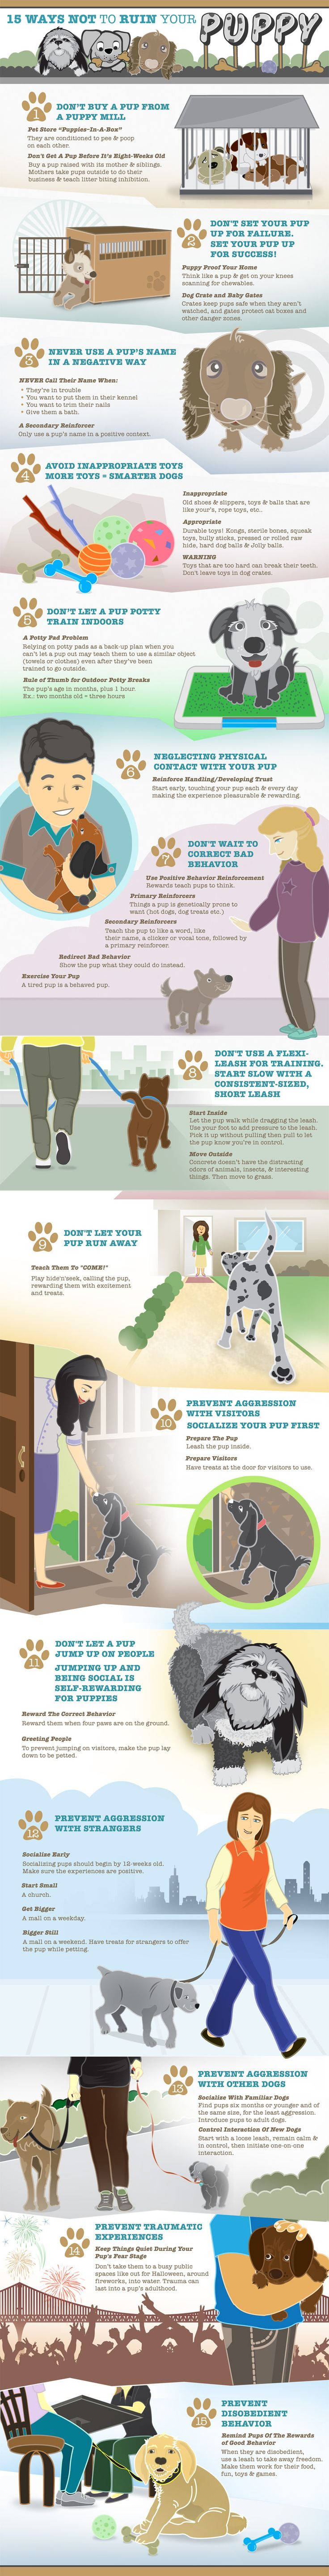 Puppy Training Graphic